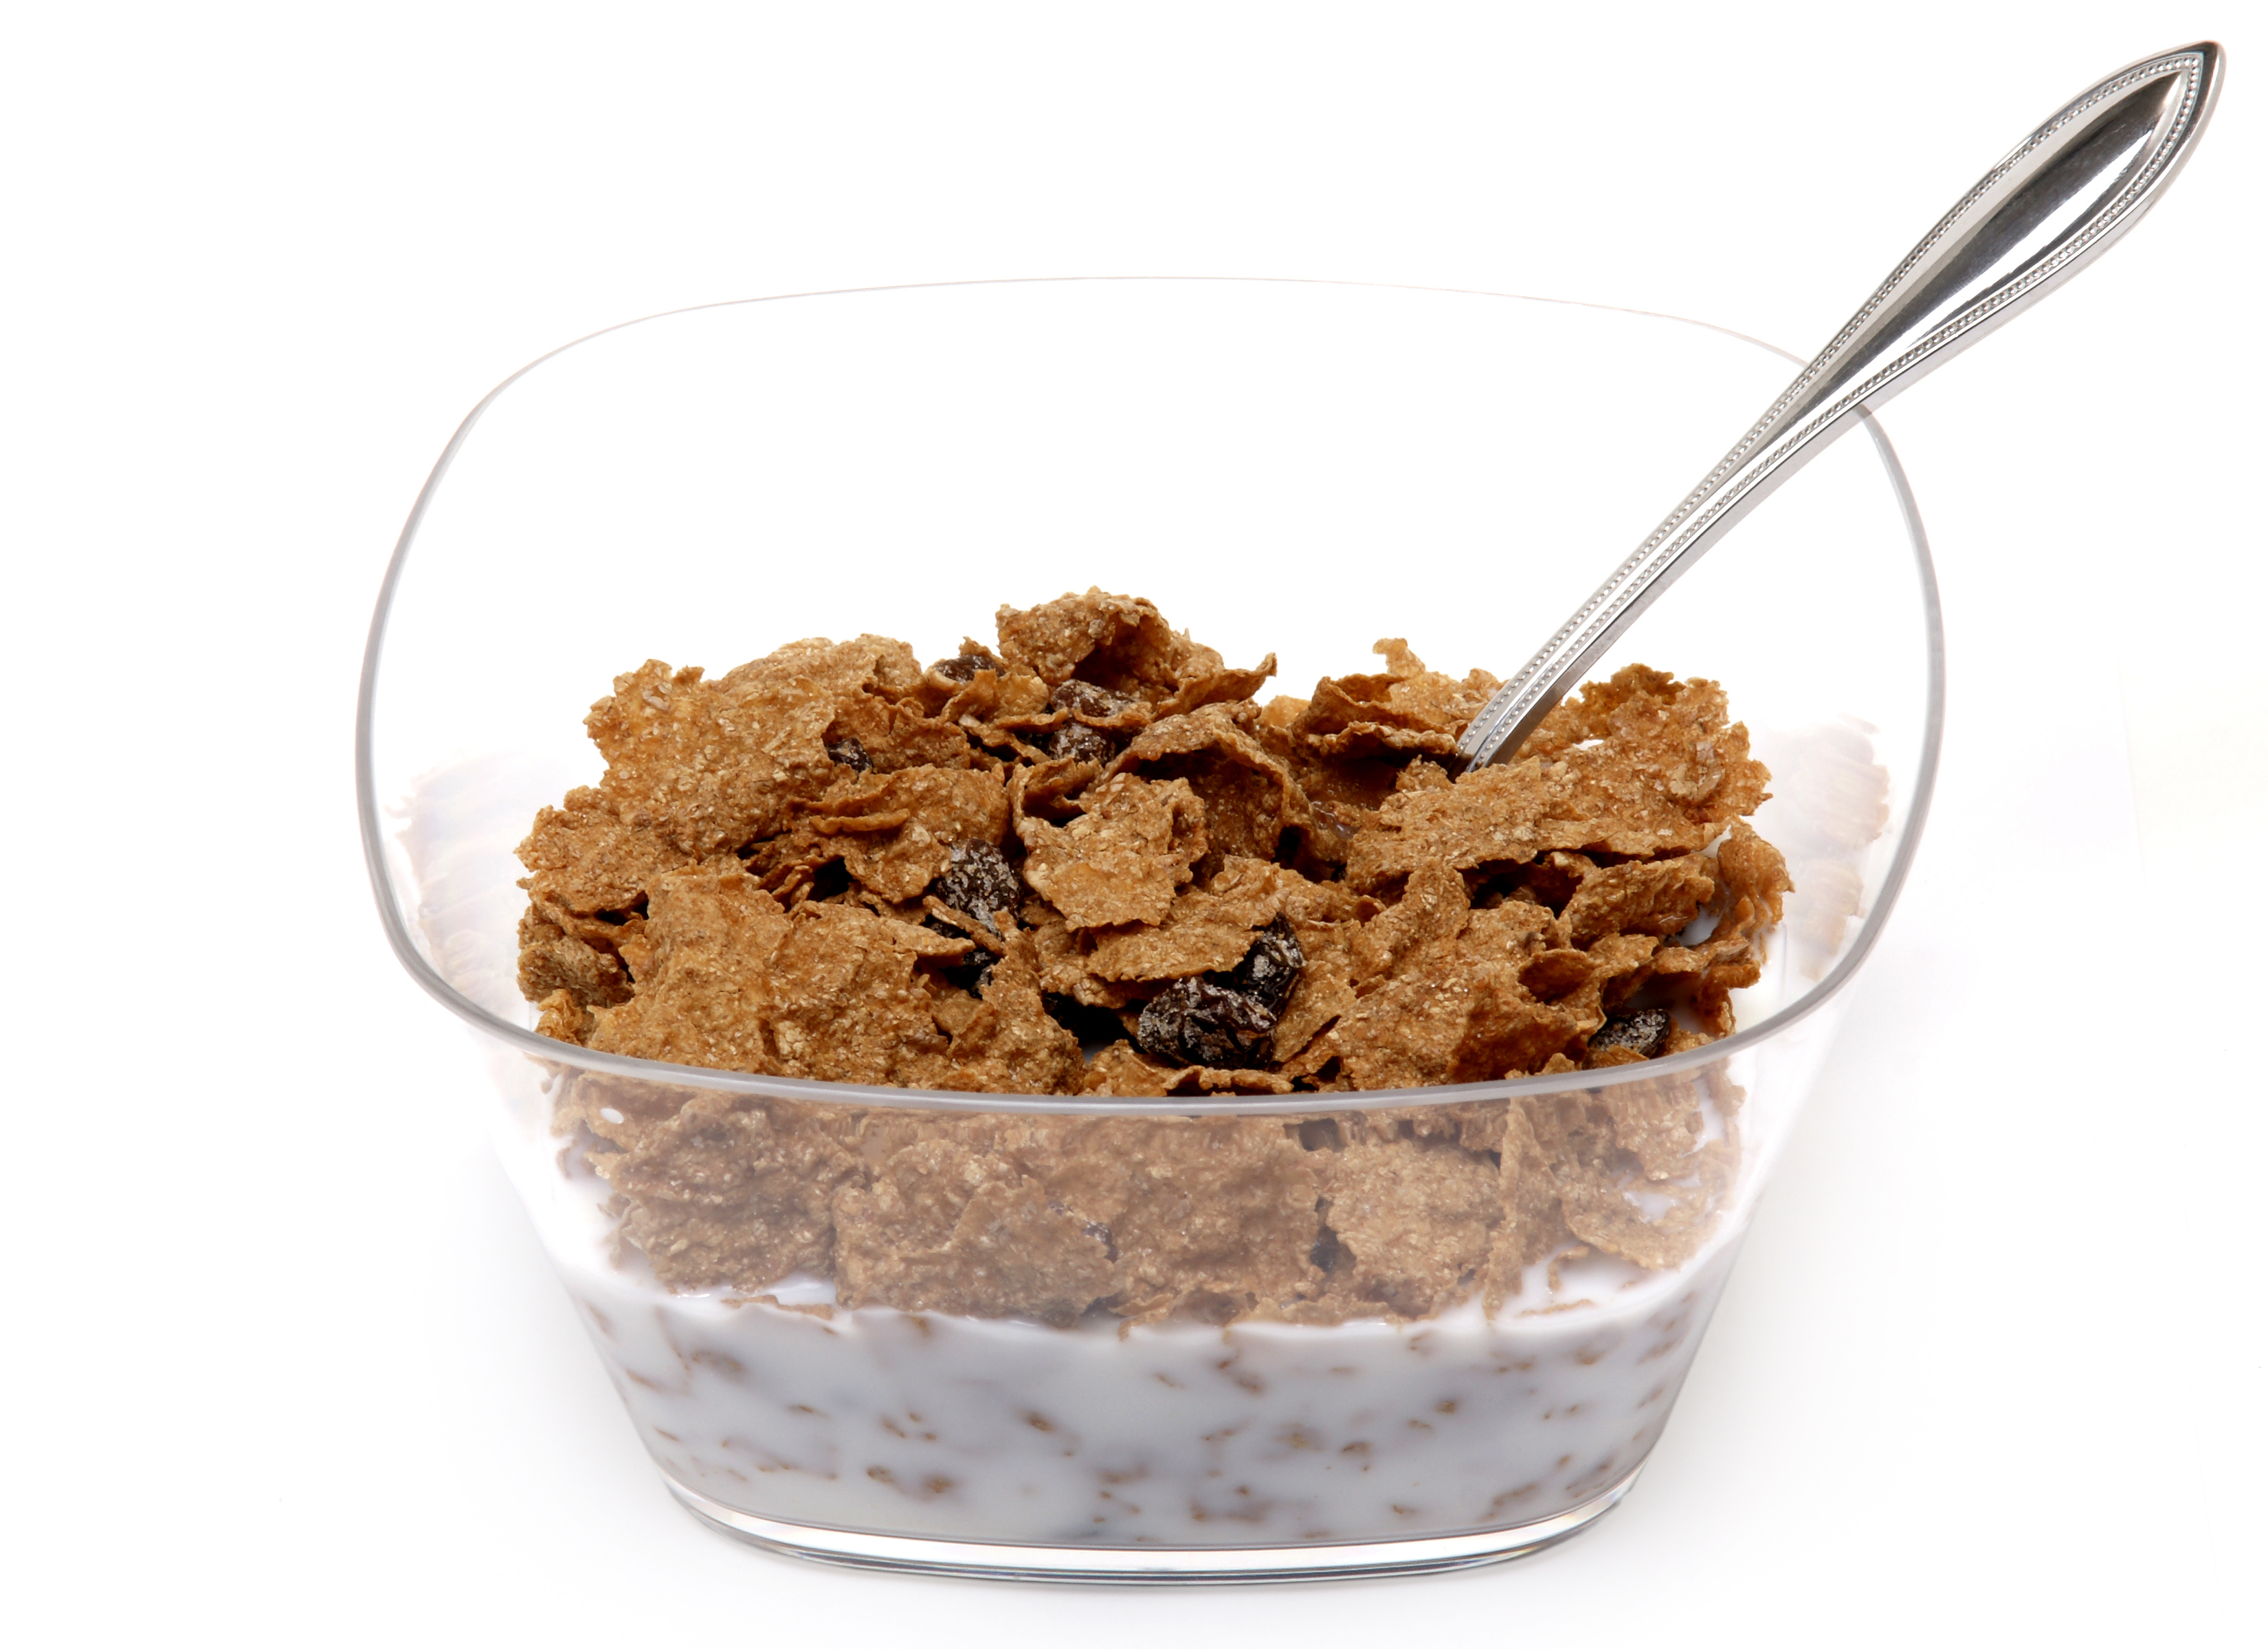 Raisin Bran - Wikipedia